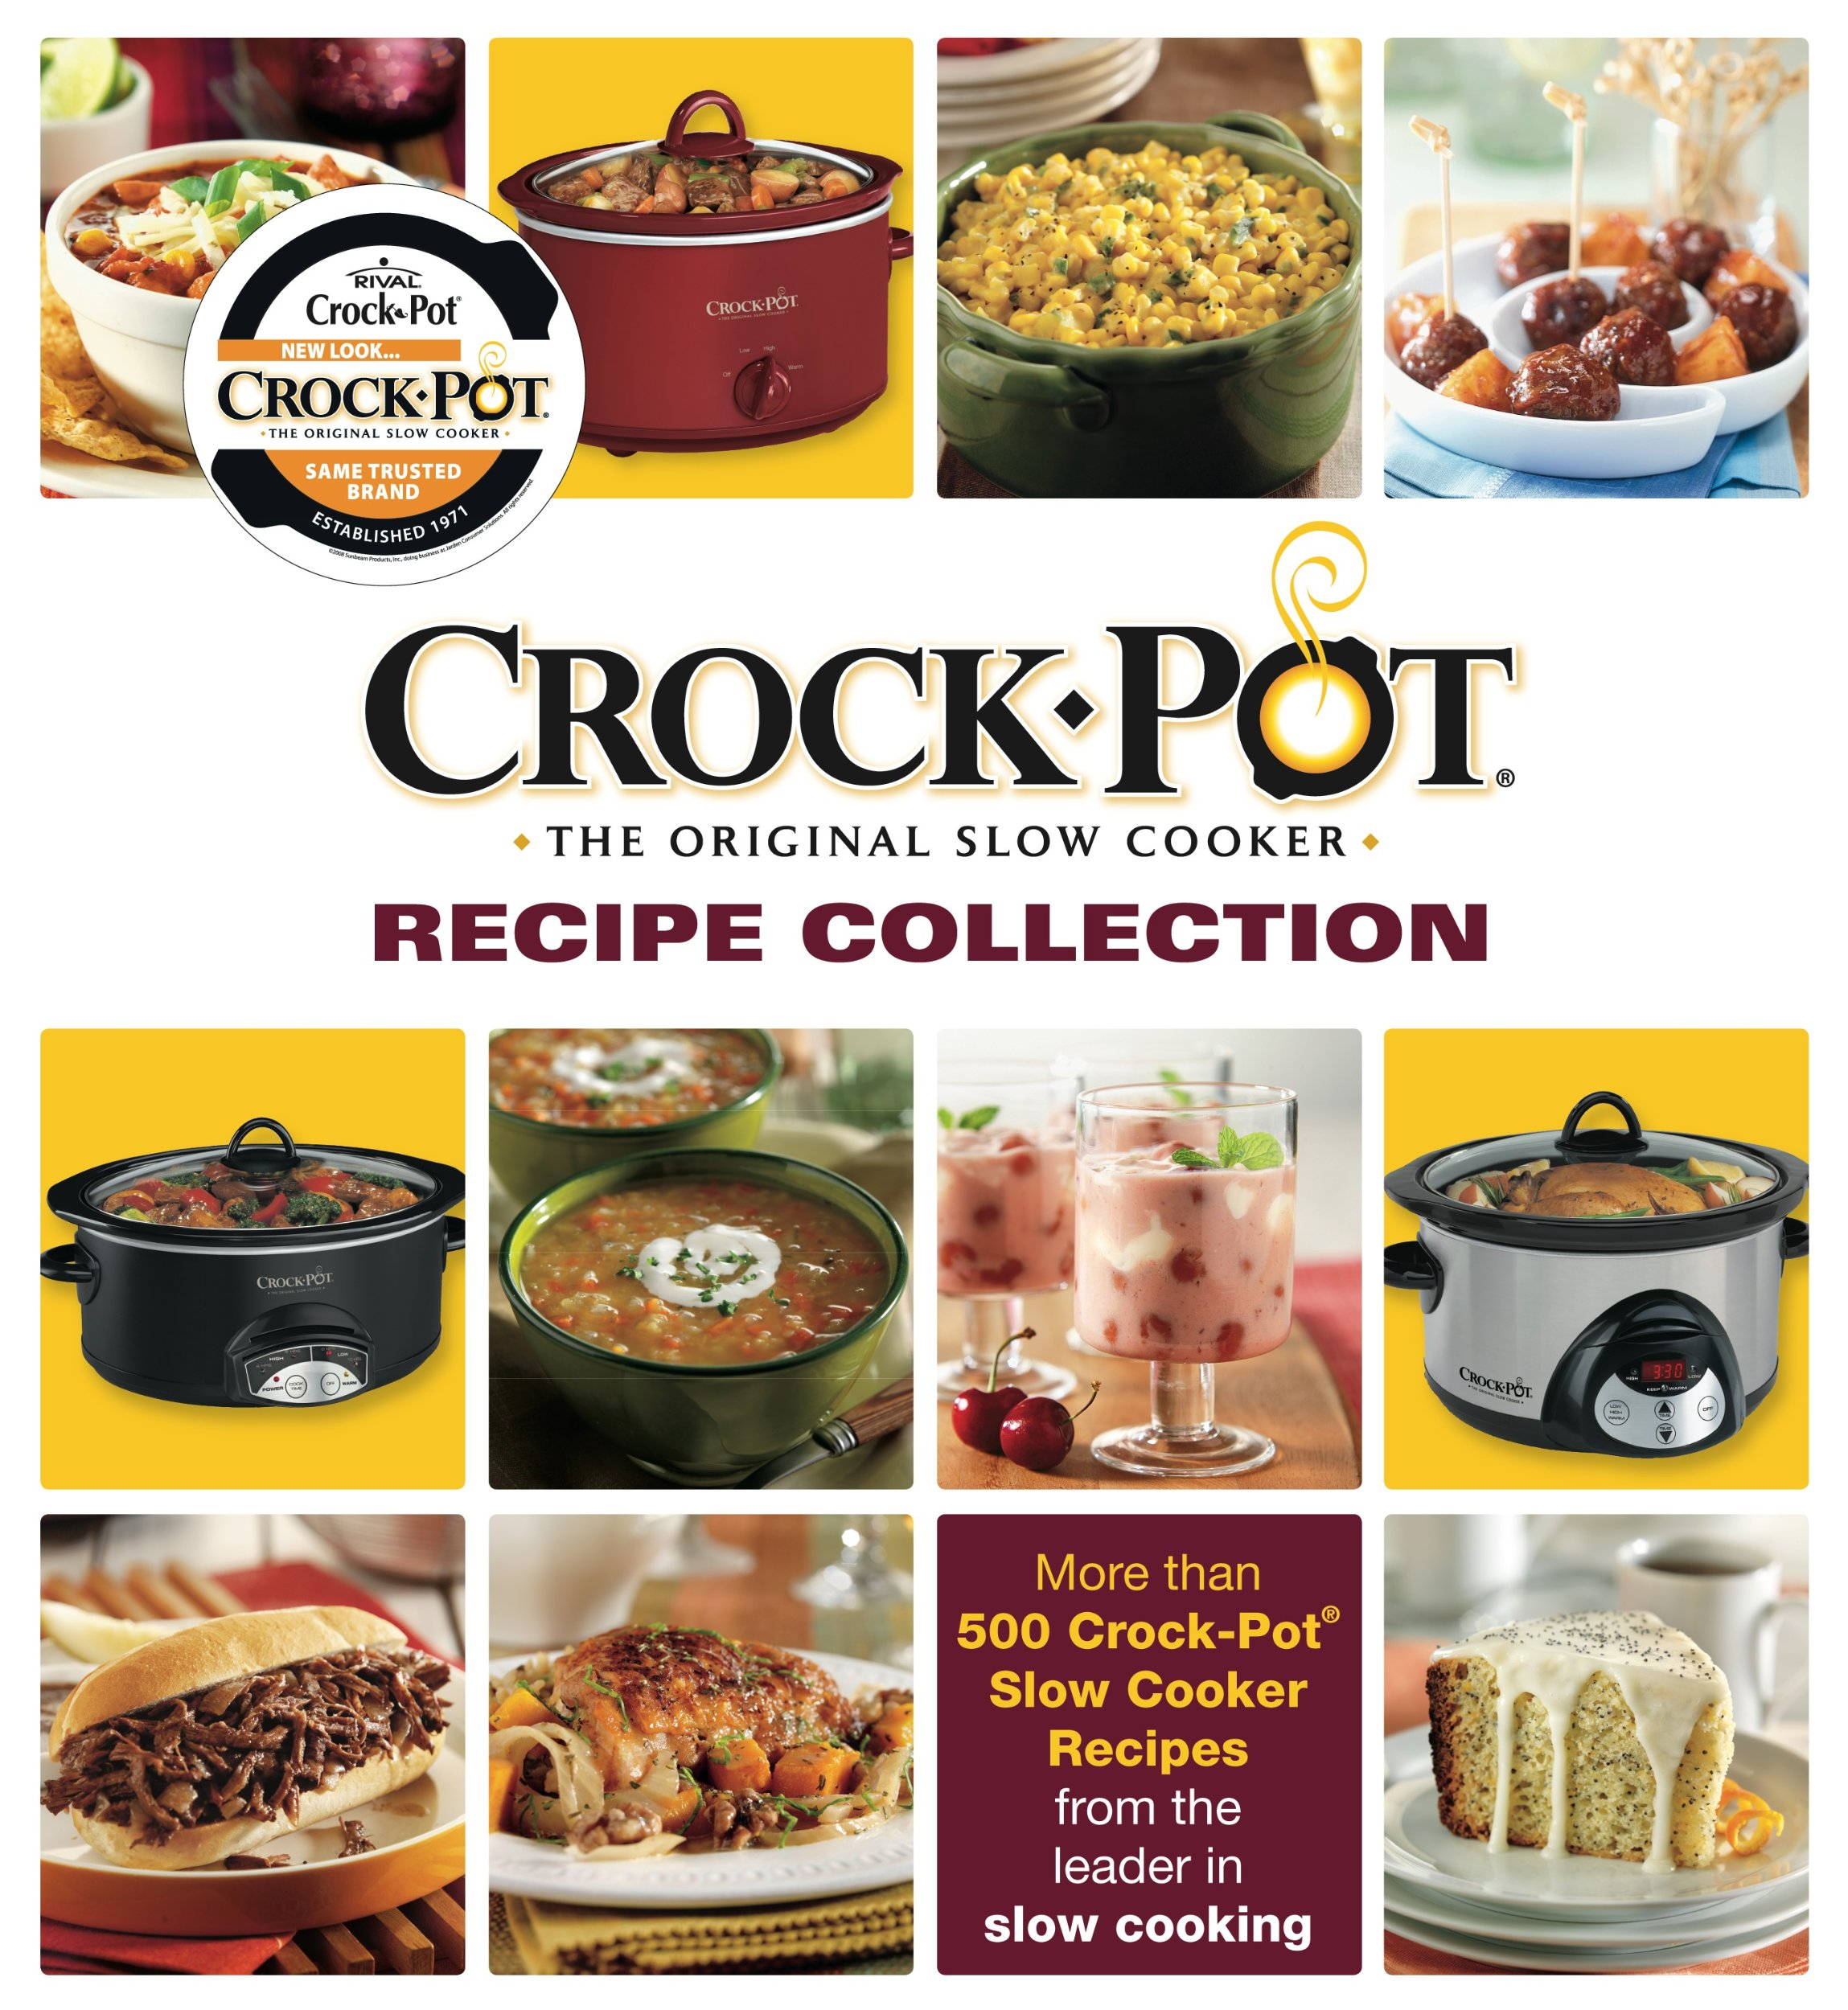 Crockpot ultimate recipe collection 5 ring binder editors of crockpot ultimate recipe collection 5 ring binder editors of publications international amazon books forumfinder Gallery